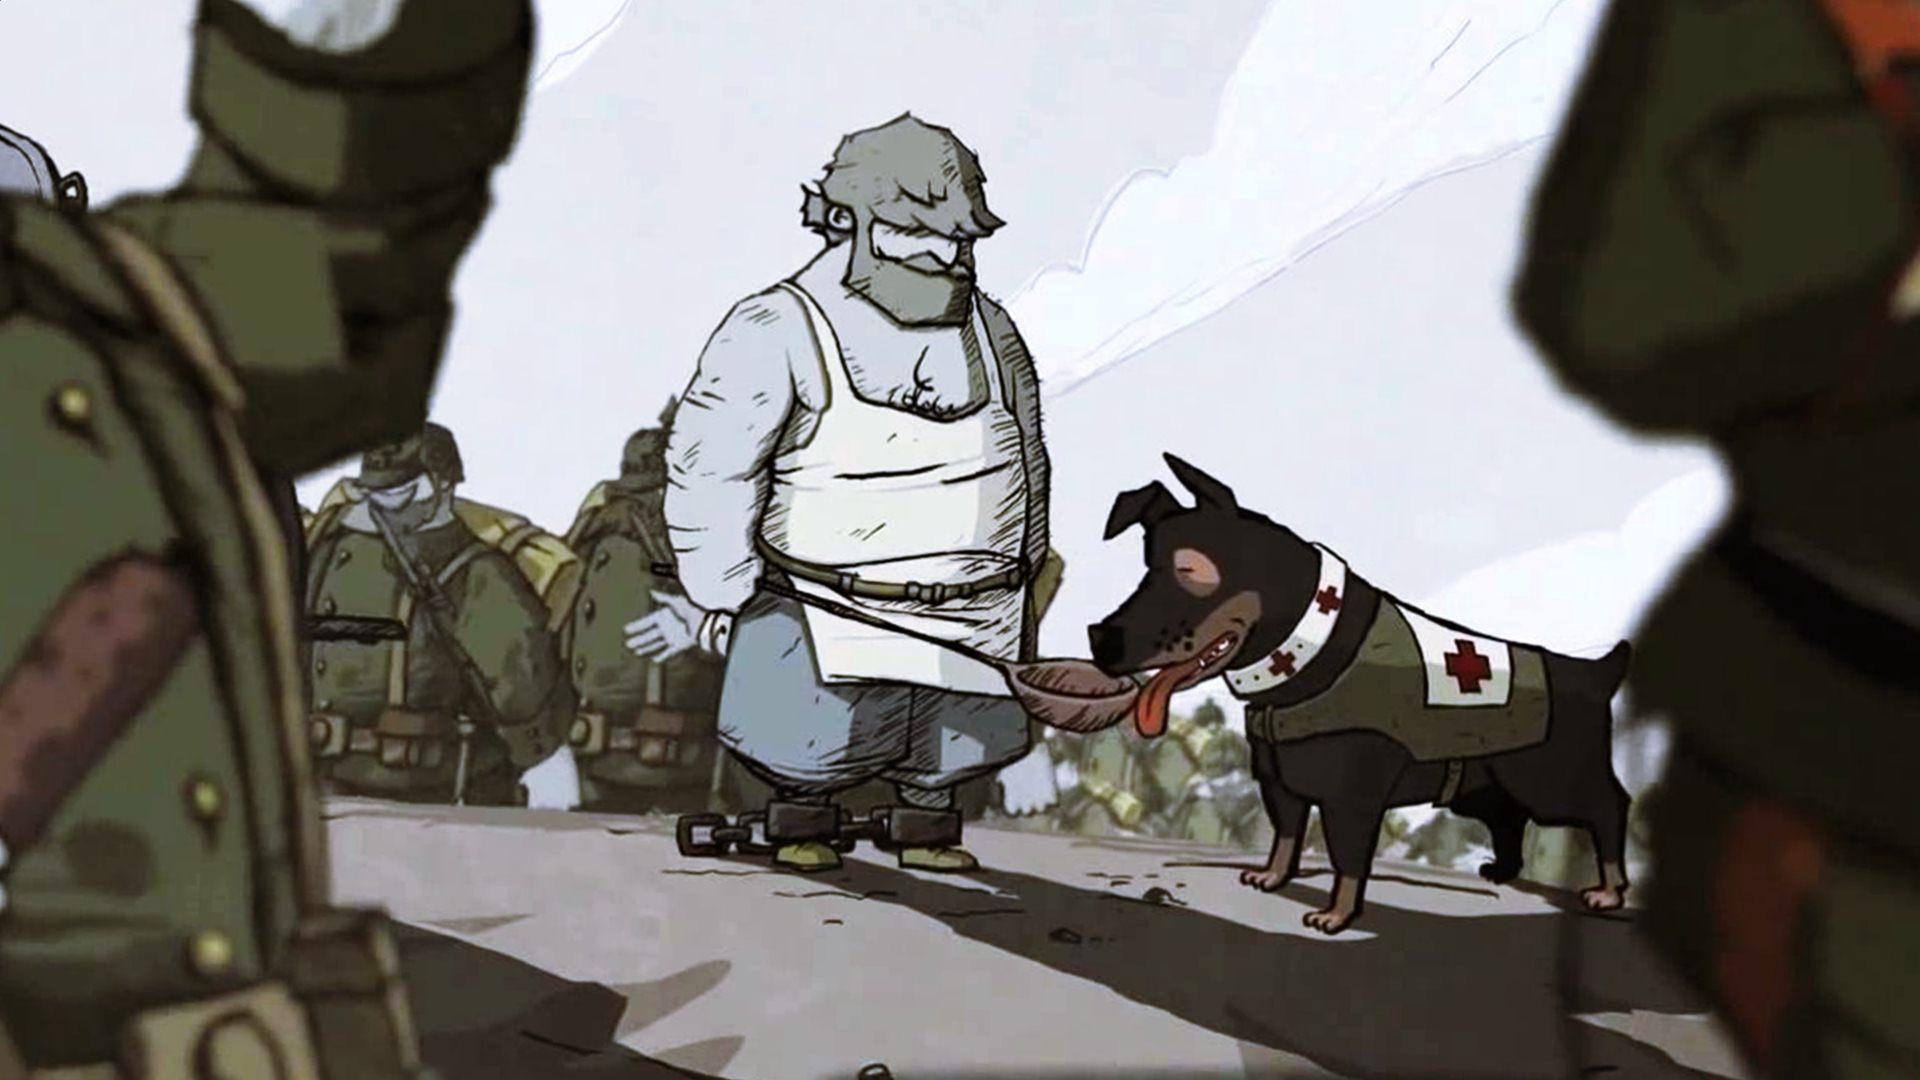 Valiant Hearts PC Wallpaper